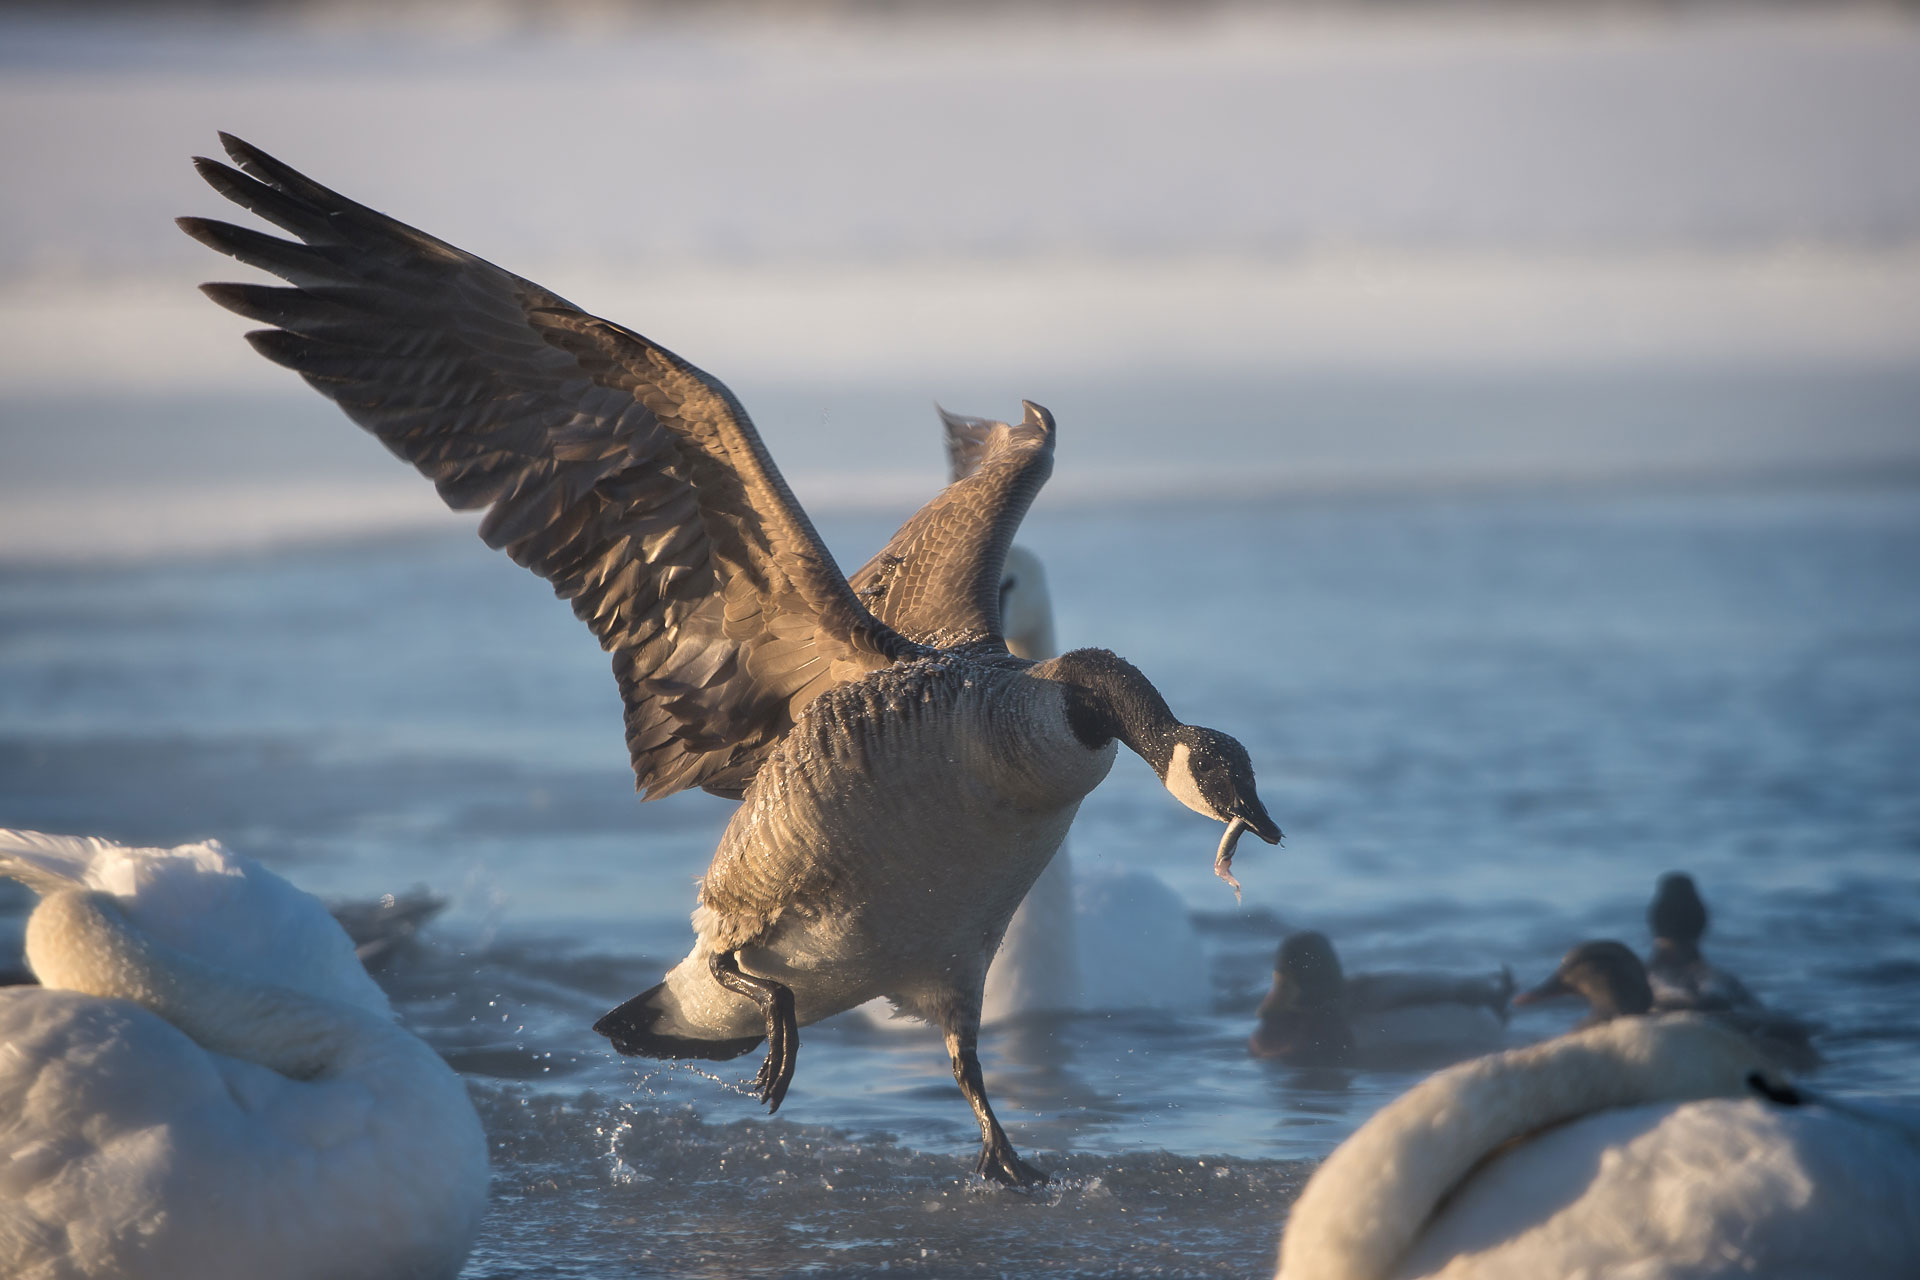 Canada Goose with Fish  (Branta canadensis)    January  10, 2016: -9 deg F